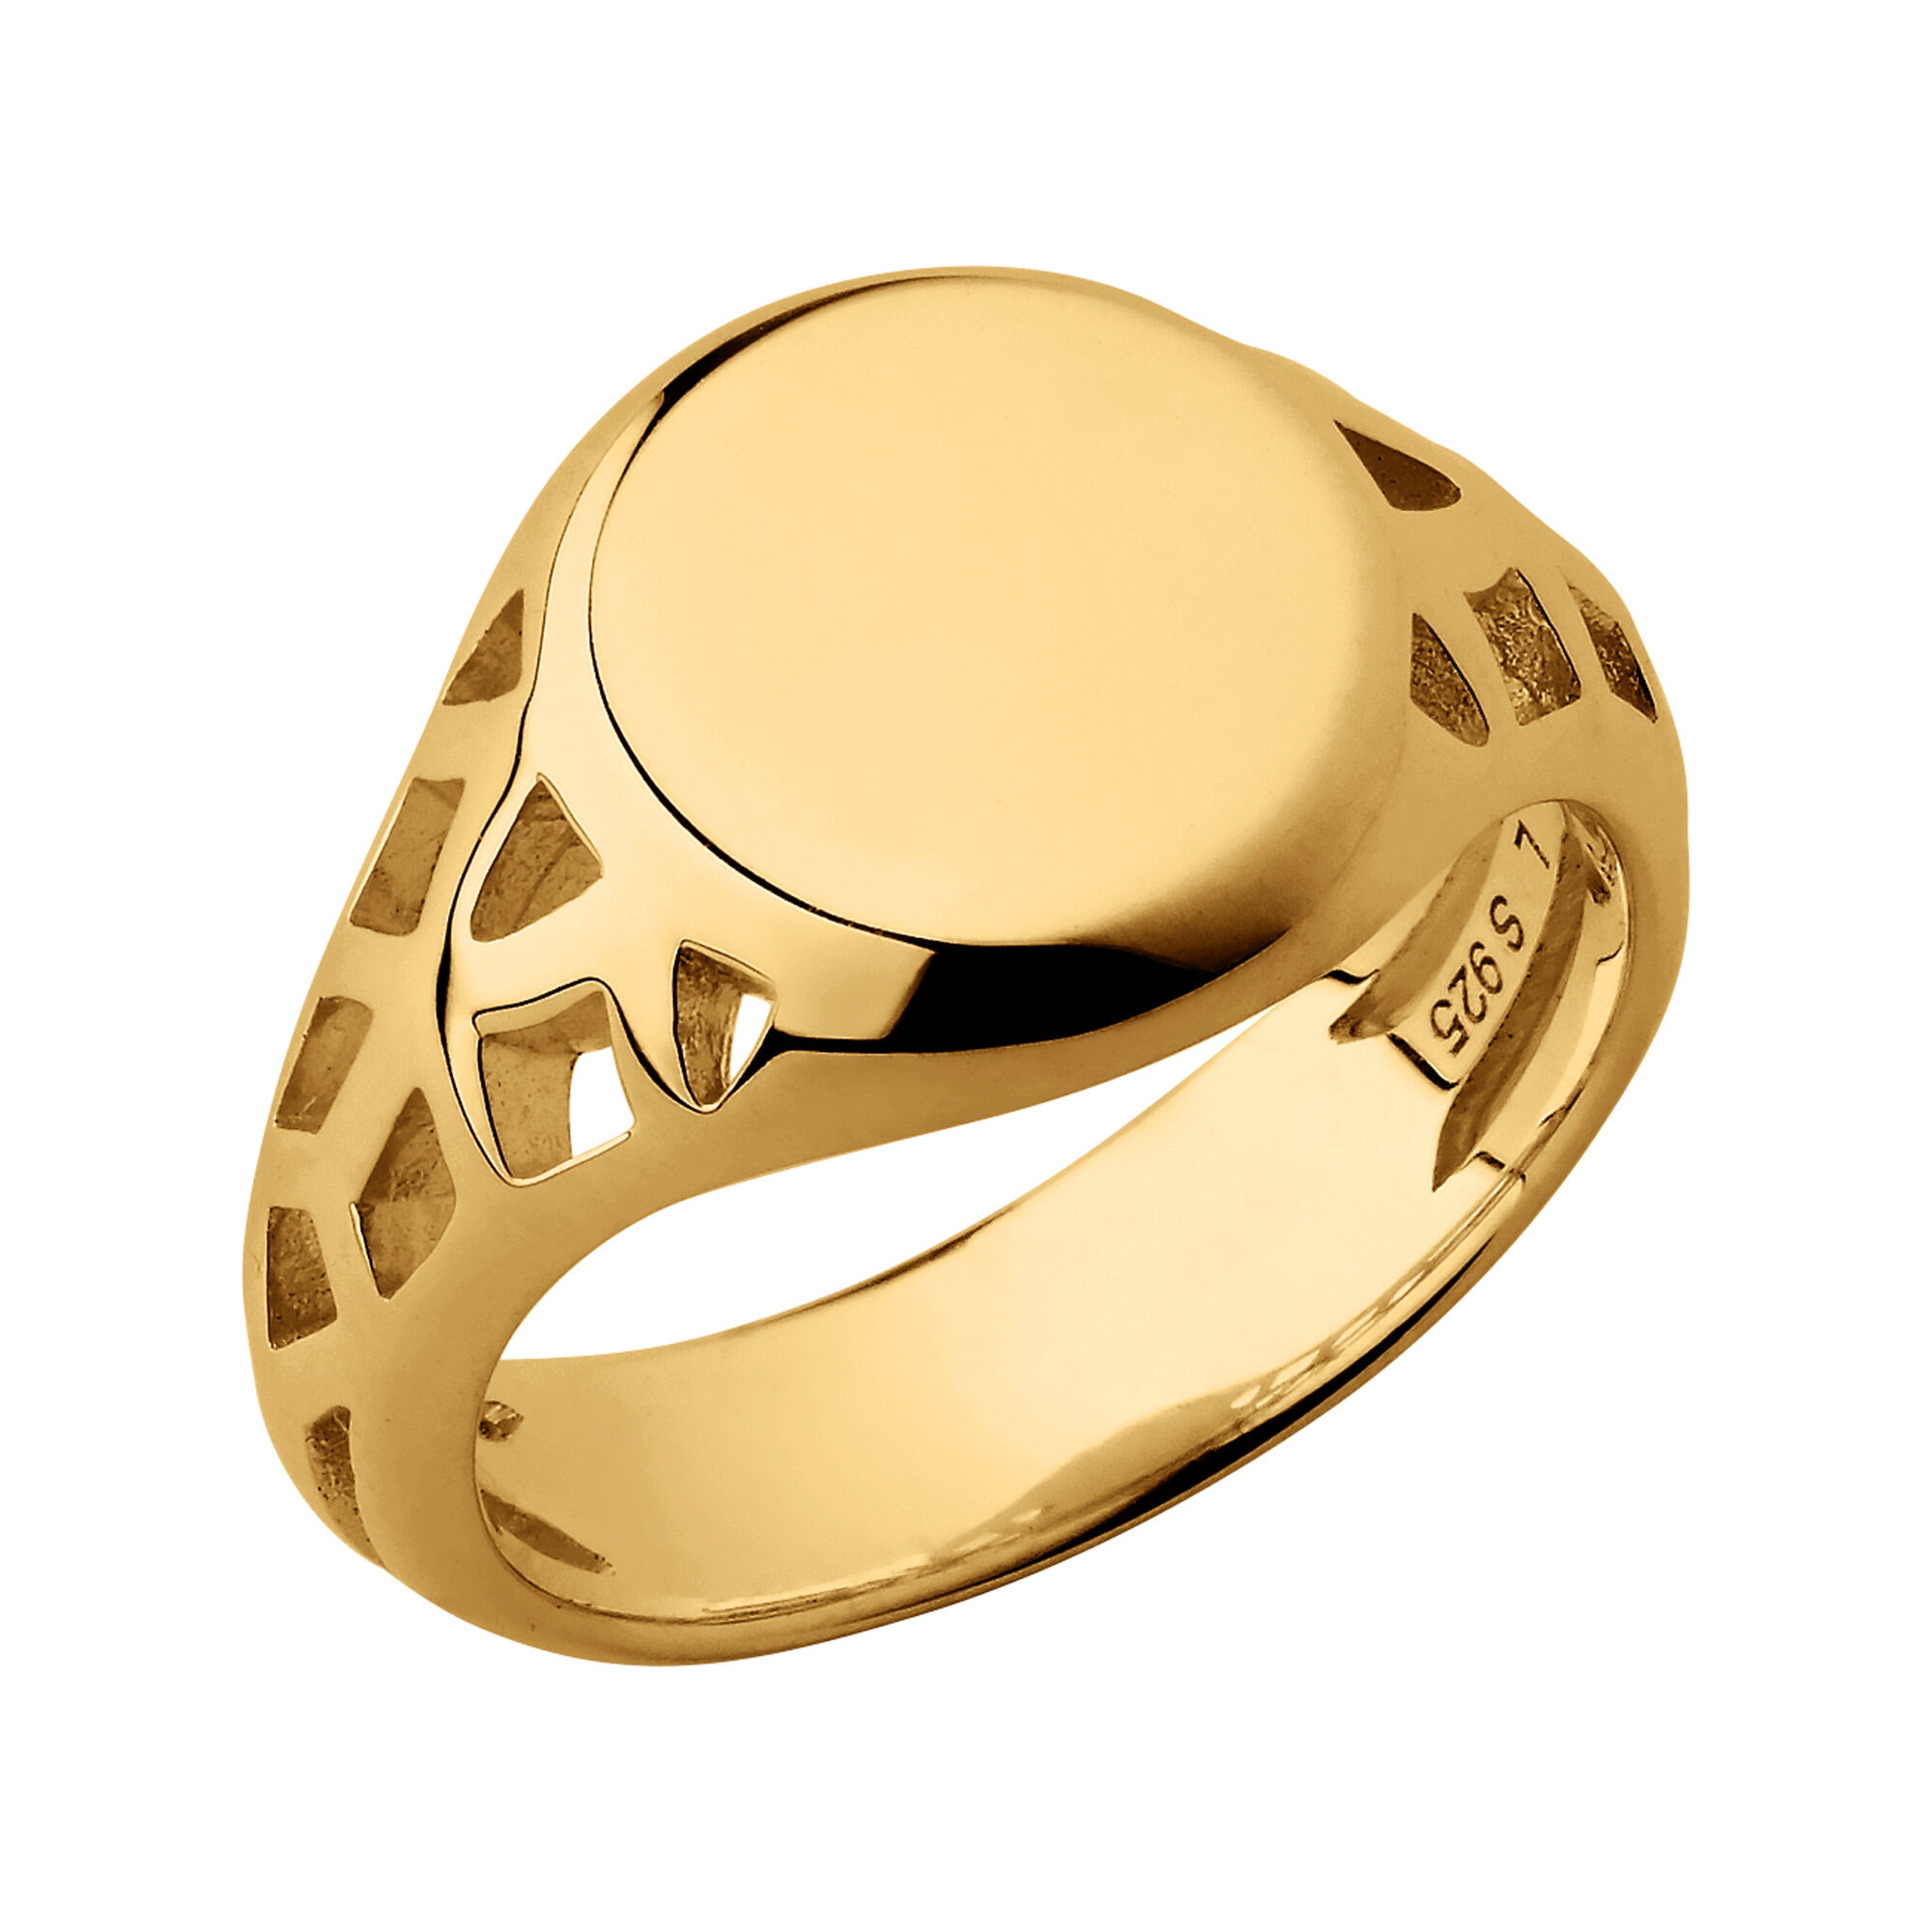 if engagement wedding r can my comments here or your ladies gold we ring pictures set is askwomen rings plain see of